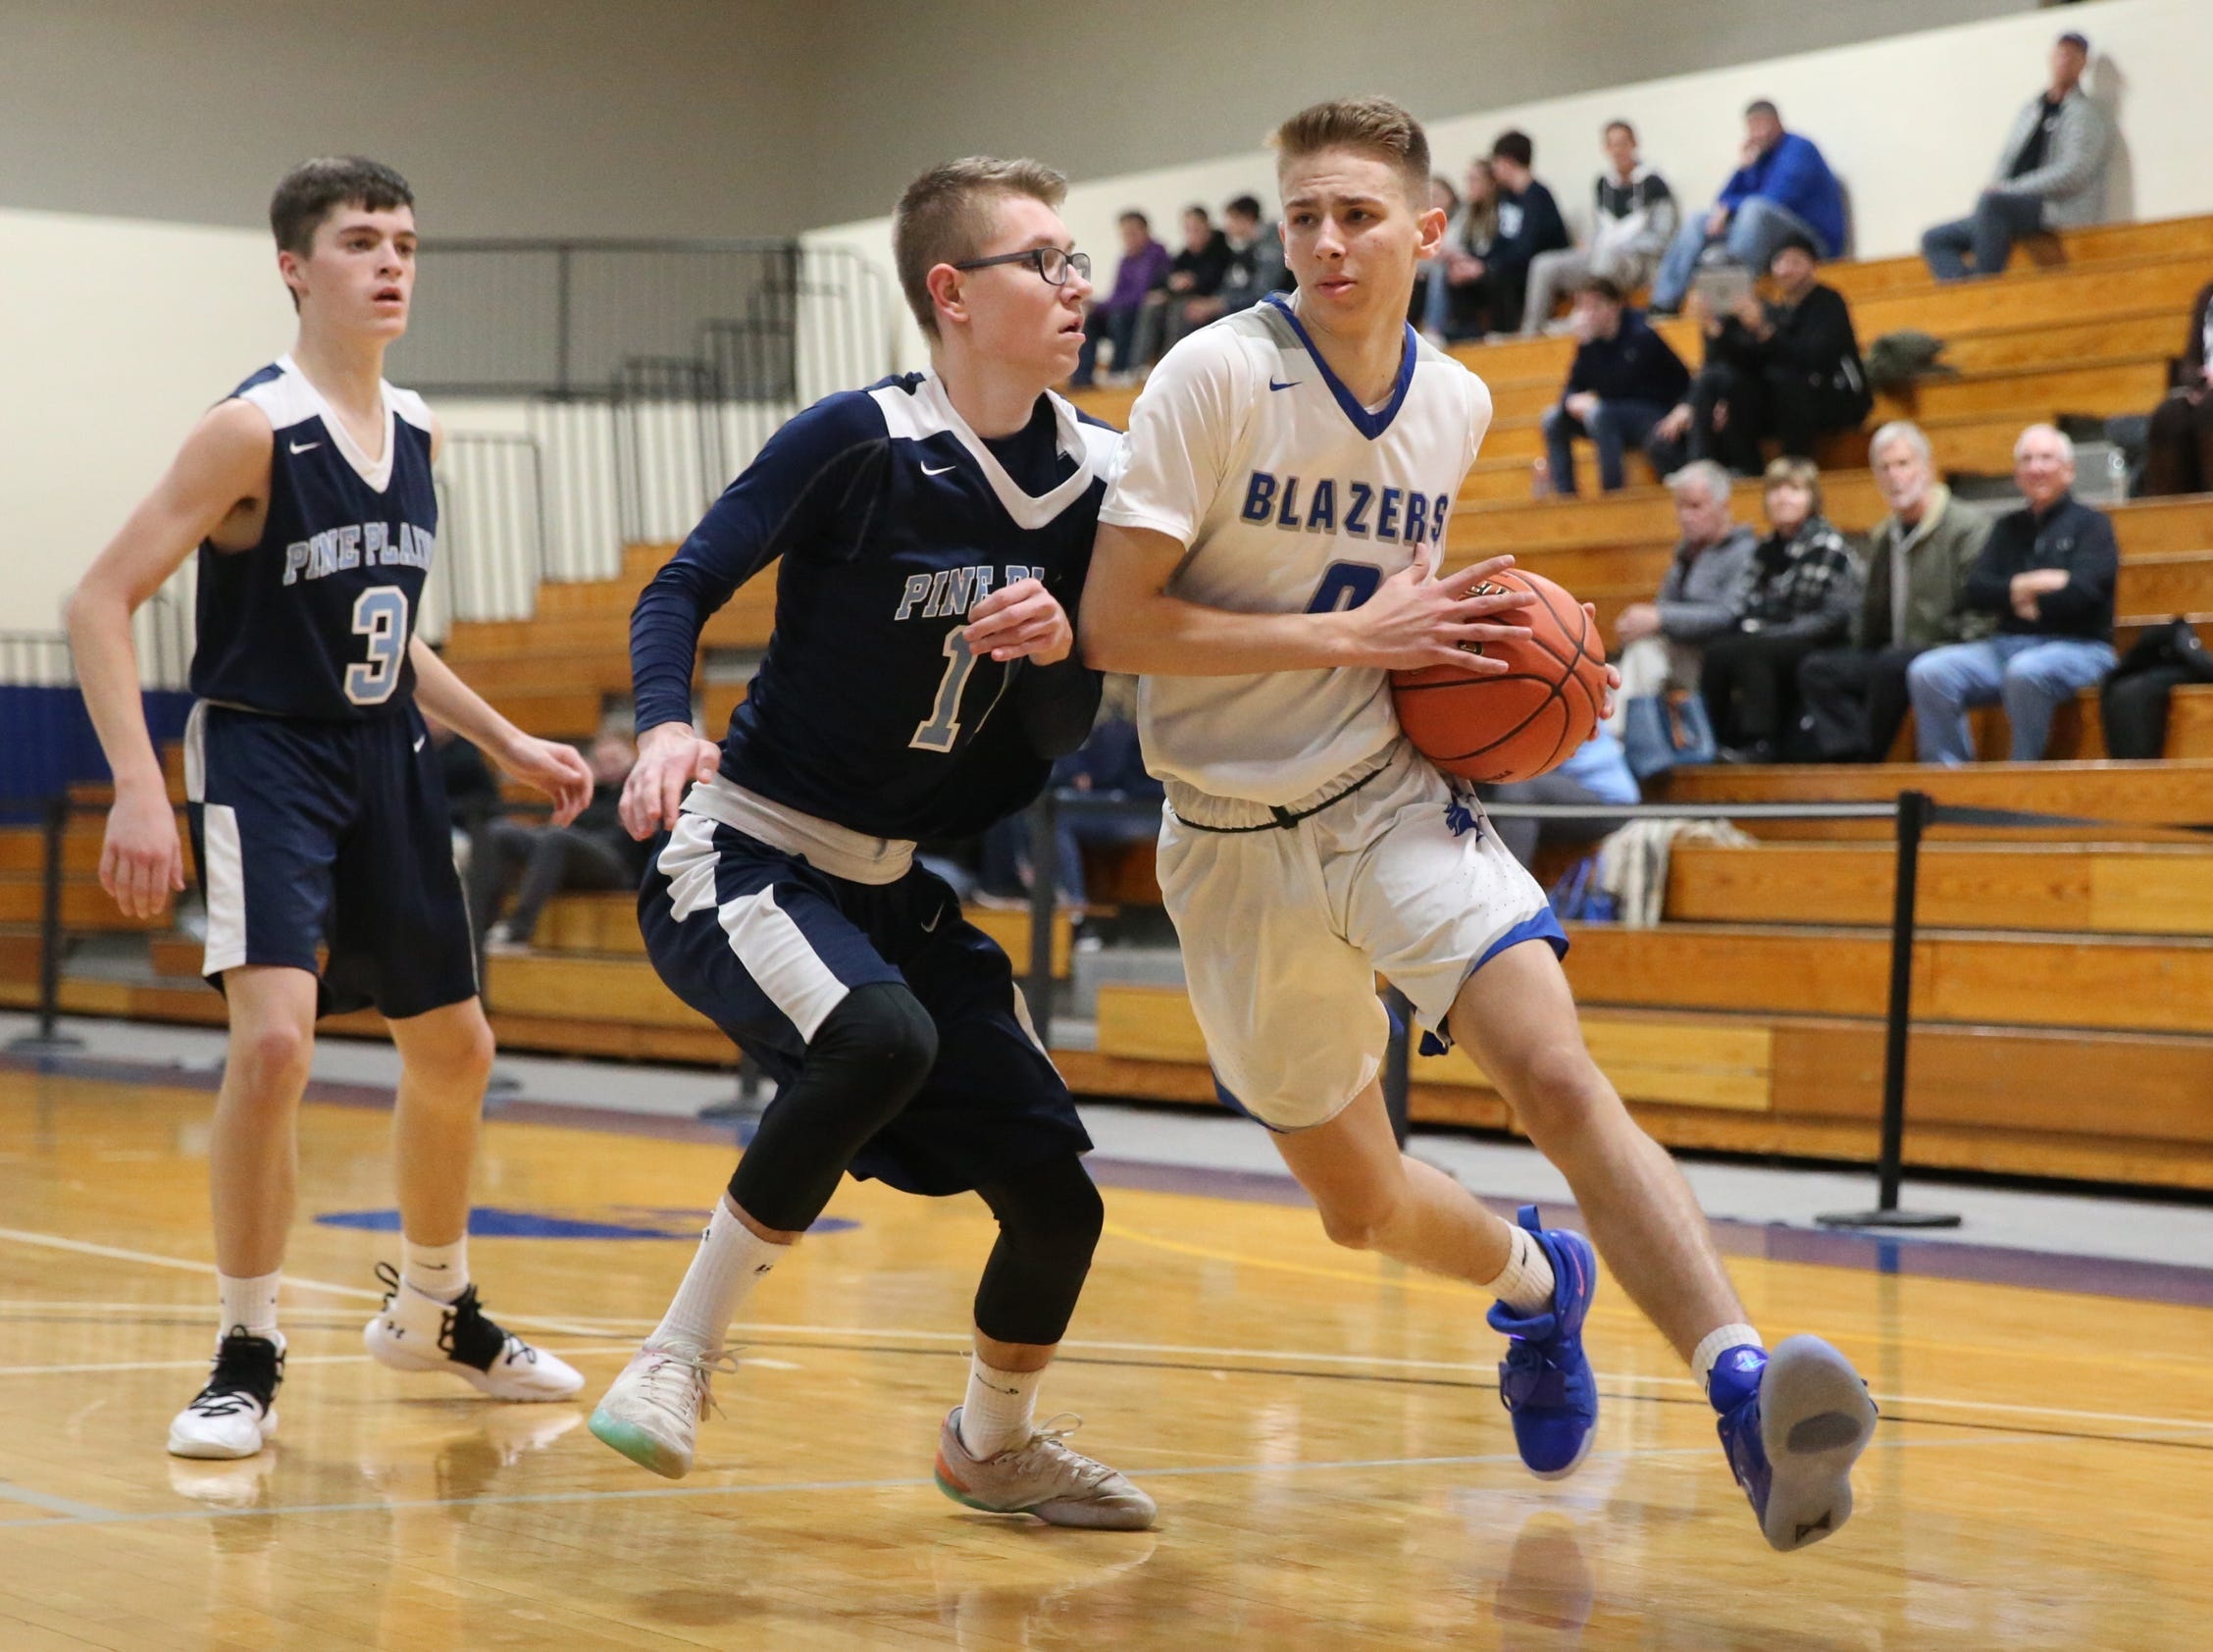 Millbrook's Jake Daly (0) drives on Pine Plains' Caleb McCaul (11) in the boys Class C section final basketball game at Mount St. Mary College in Newburgh on Thursday, February 28, 2019.